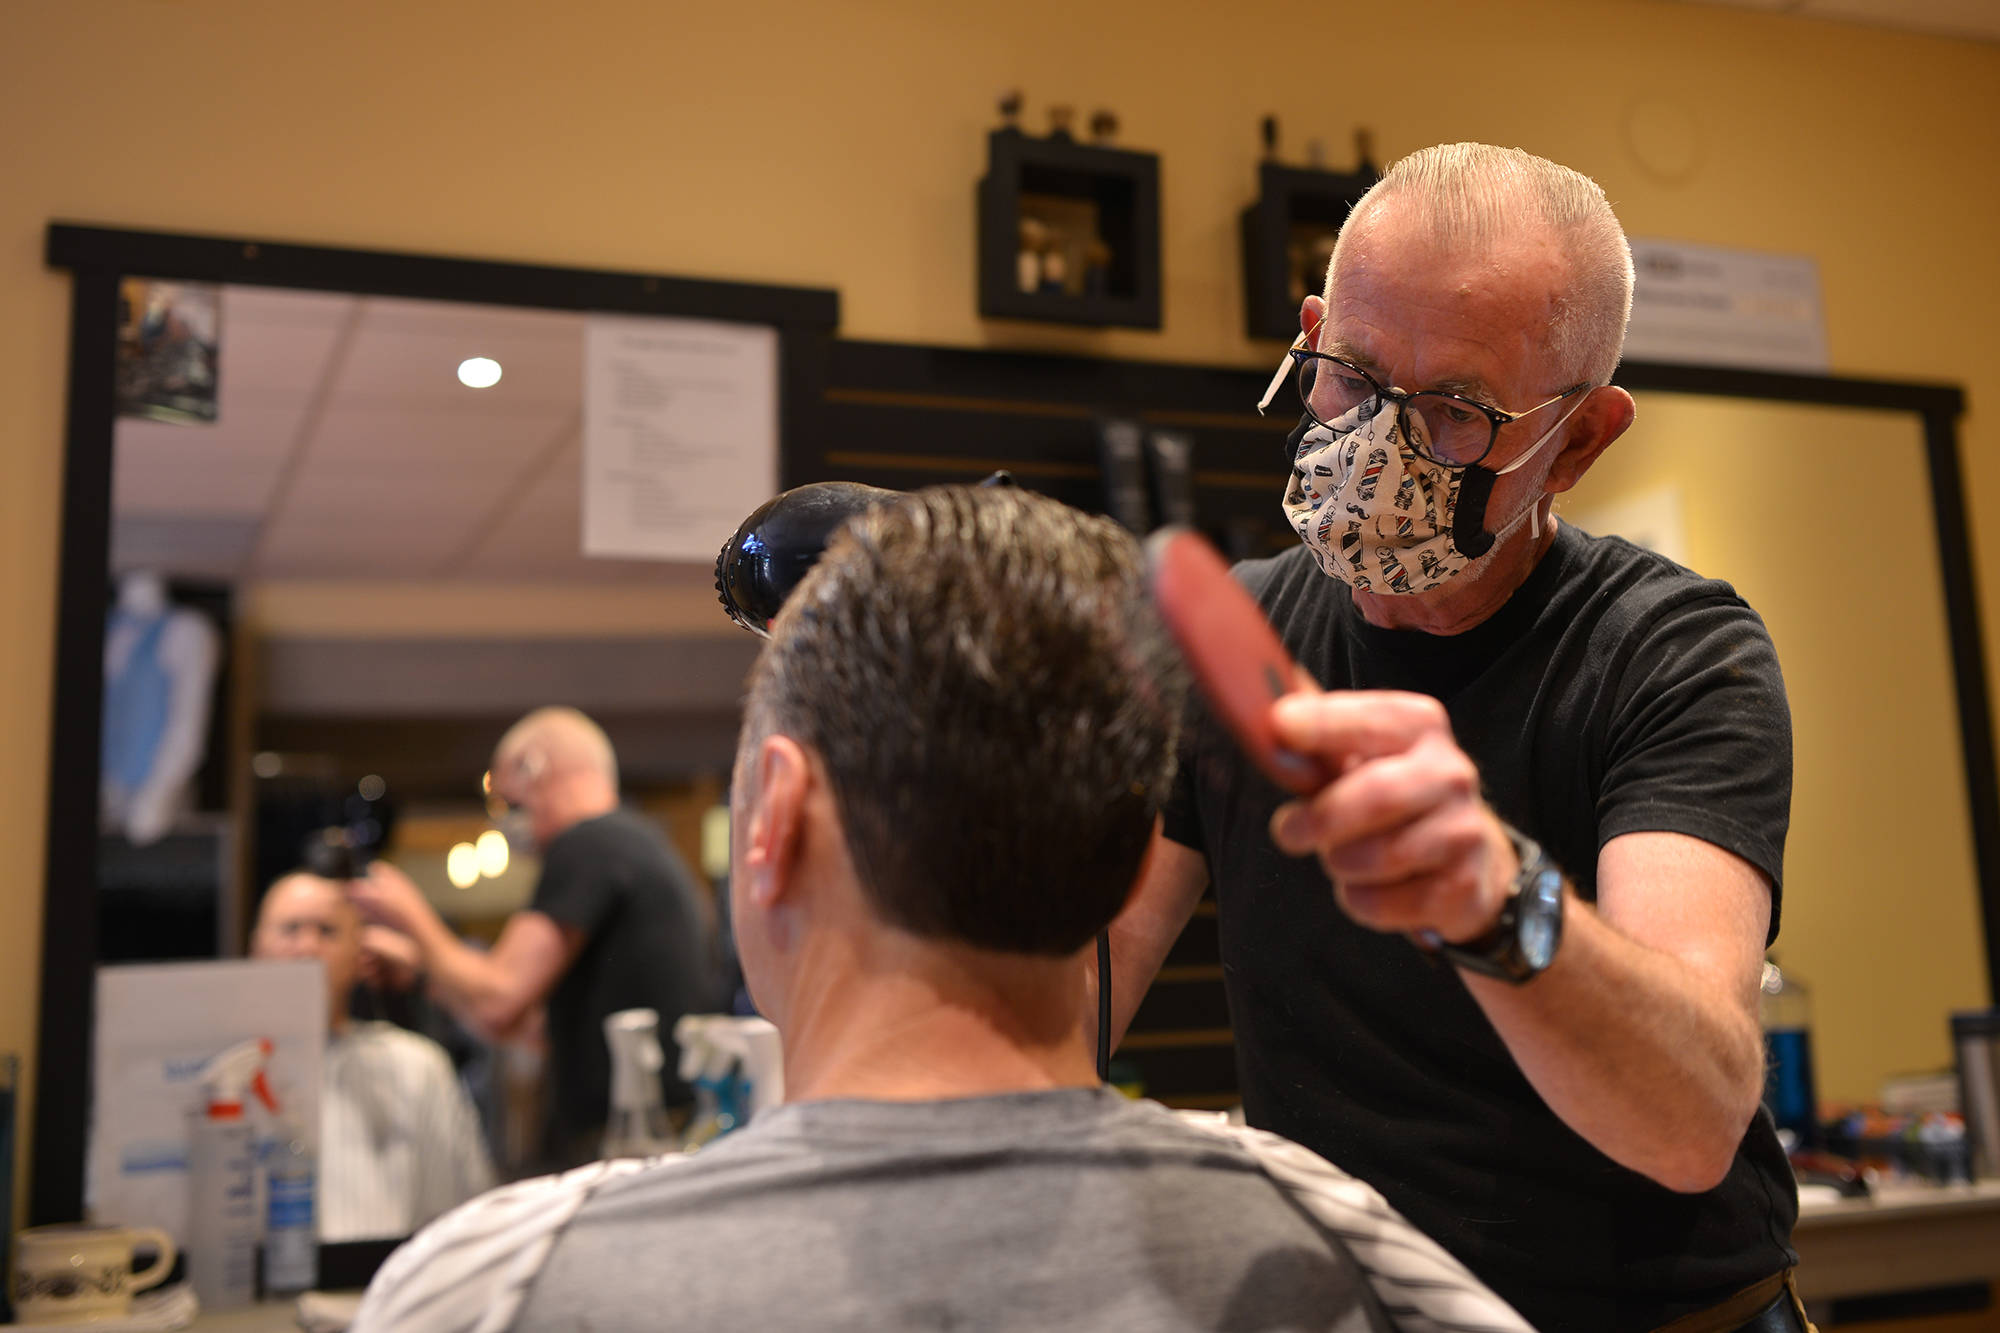 Barbers around the province are being urged to join a new BC Barbers Coalition, part of a new BC Barbers Association, a group created with the purpose of giving those in the industry a voice. Pictured above, a man receives a haircut shortly after shops reopened in Penticton. (Phil McLachlan - Western News - File)